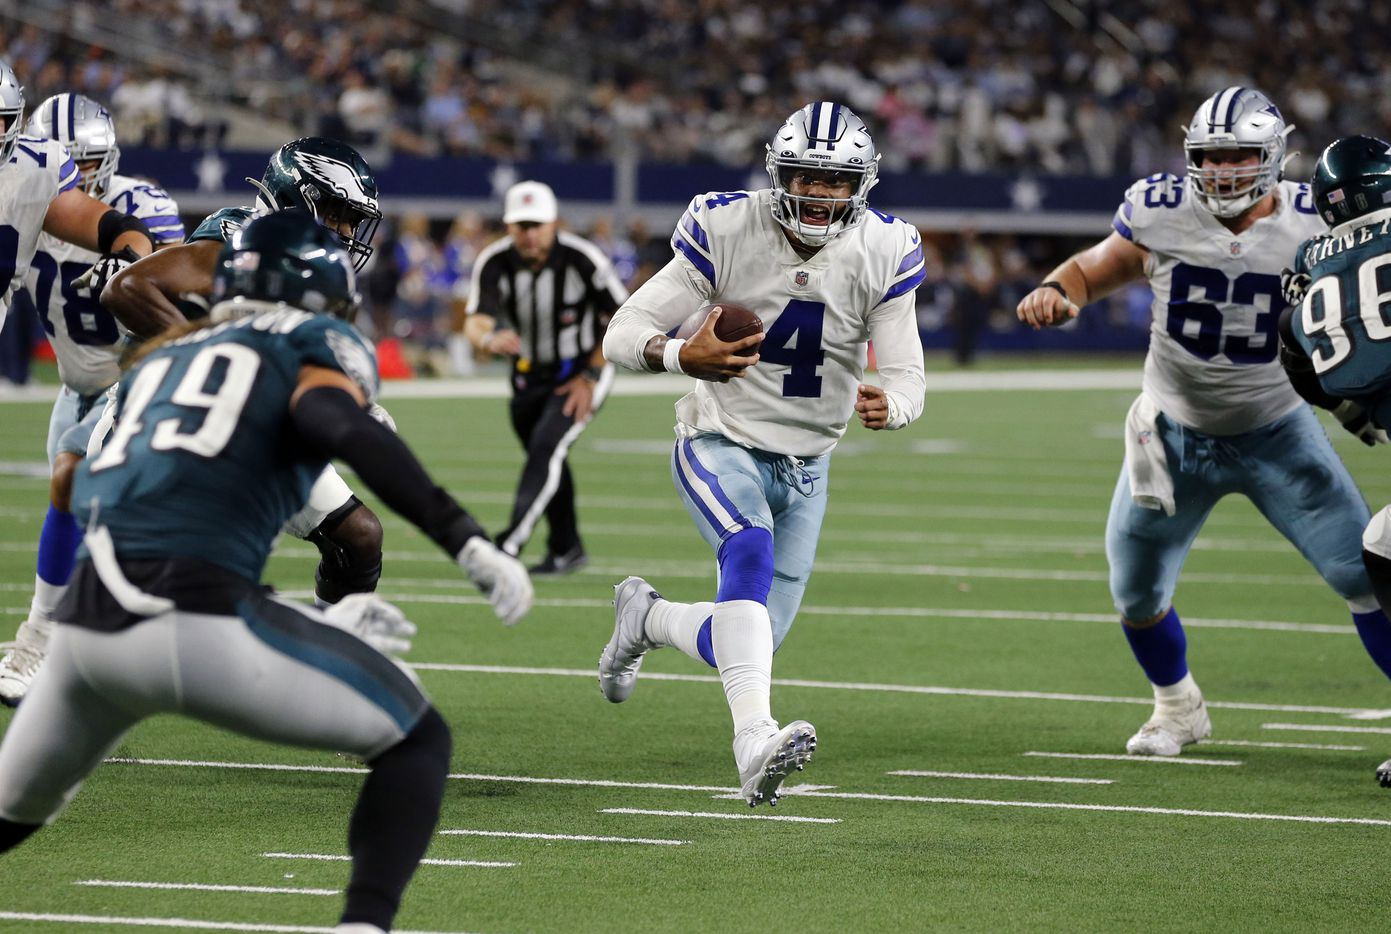 Dallas Cowboys quarterback Dak Prescott (4) scrambles to the two-yard-line during the second half of a NFL football game against the Philadelphia Eagles High at AT&T Stadium in Arlington on Monday, September 27, 2021. (John F. Rhodes / Special Contributor)